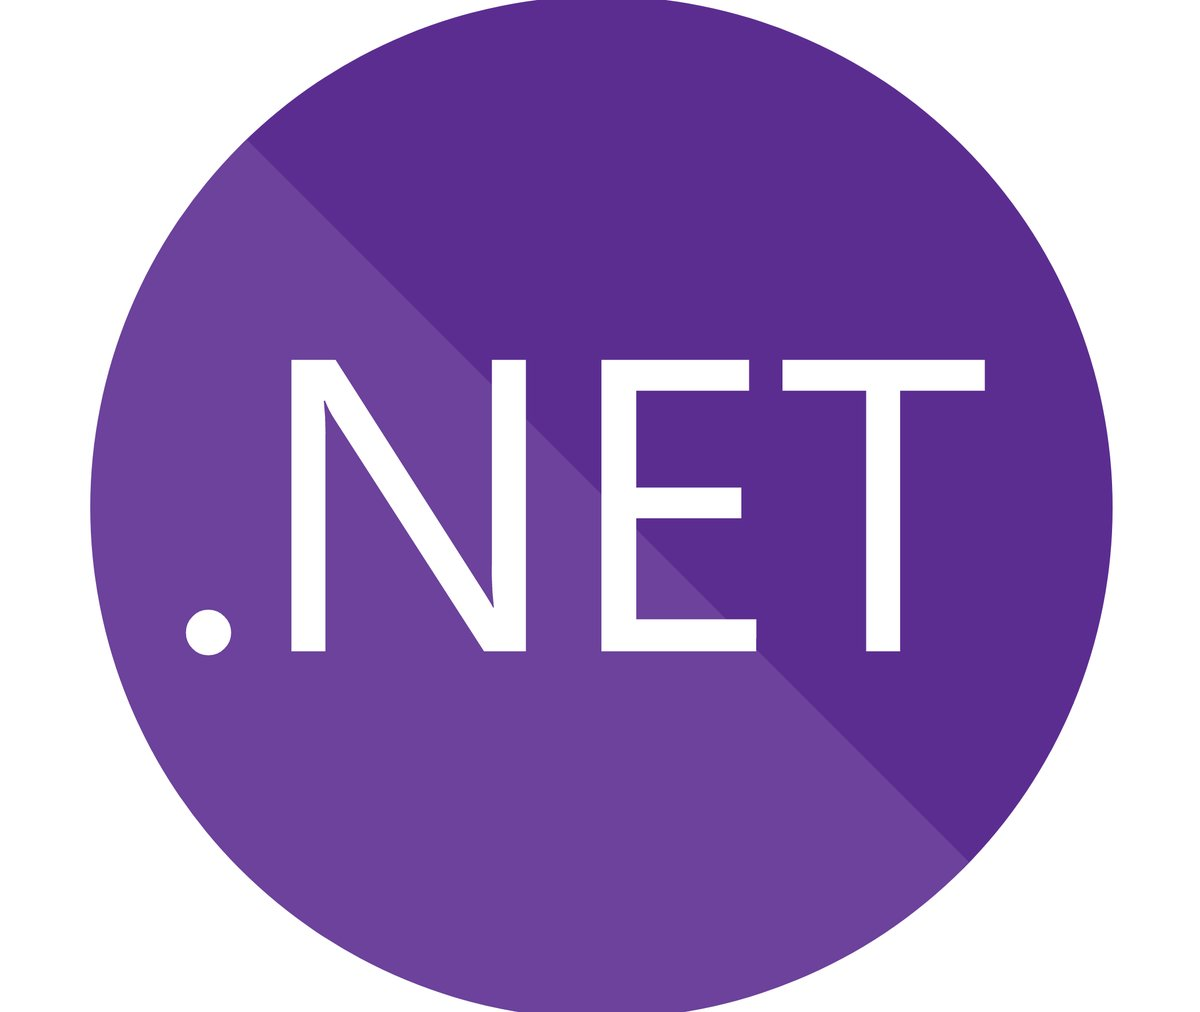 Introducing .NET Support